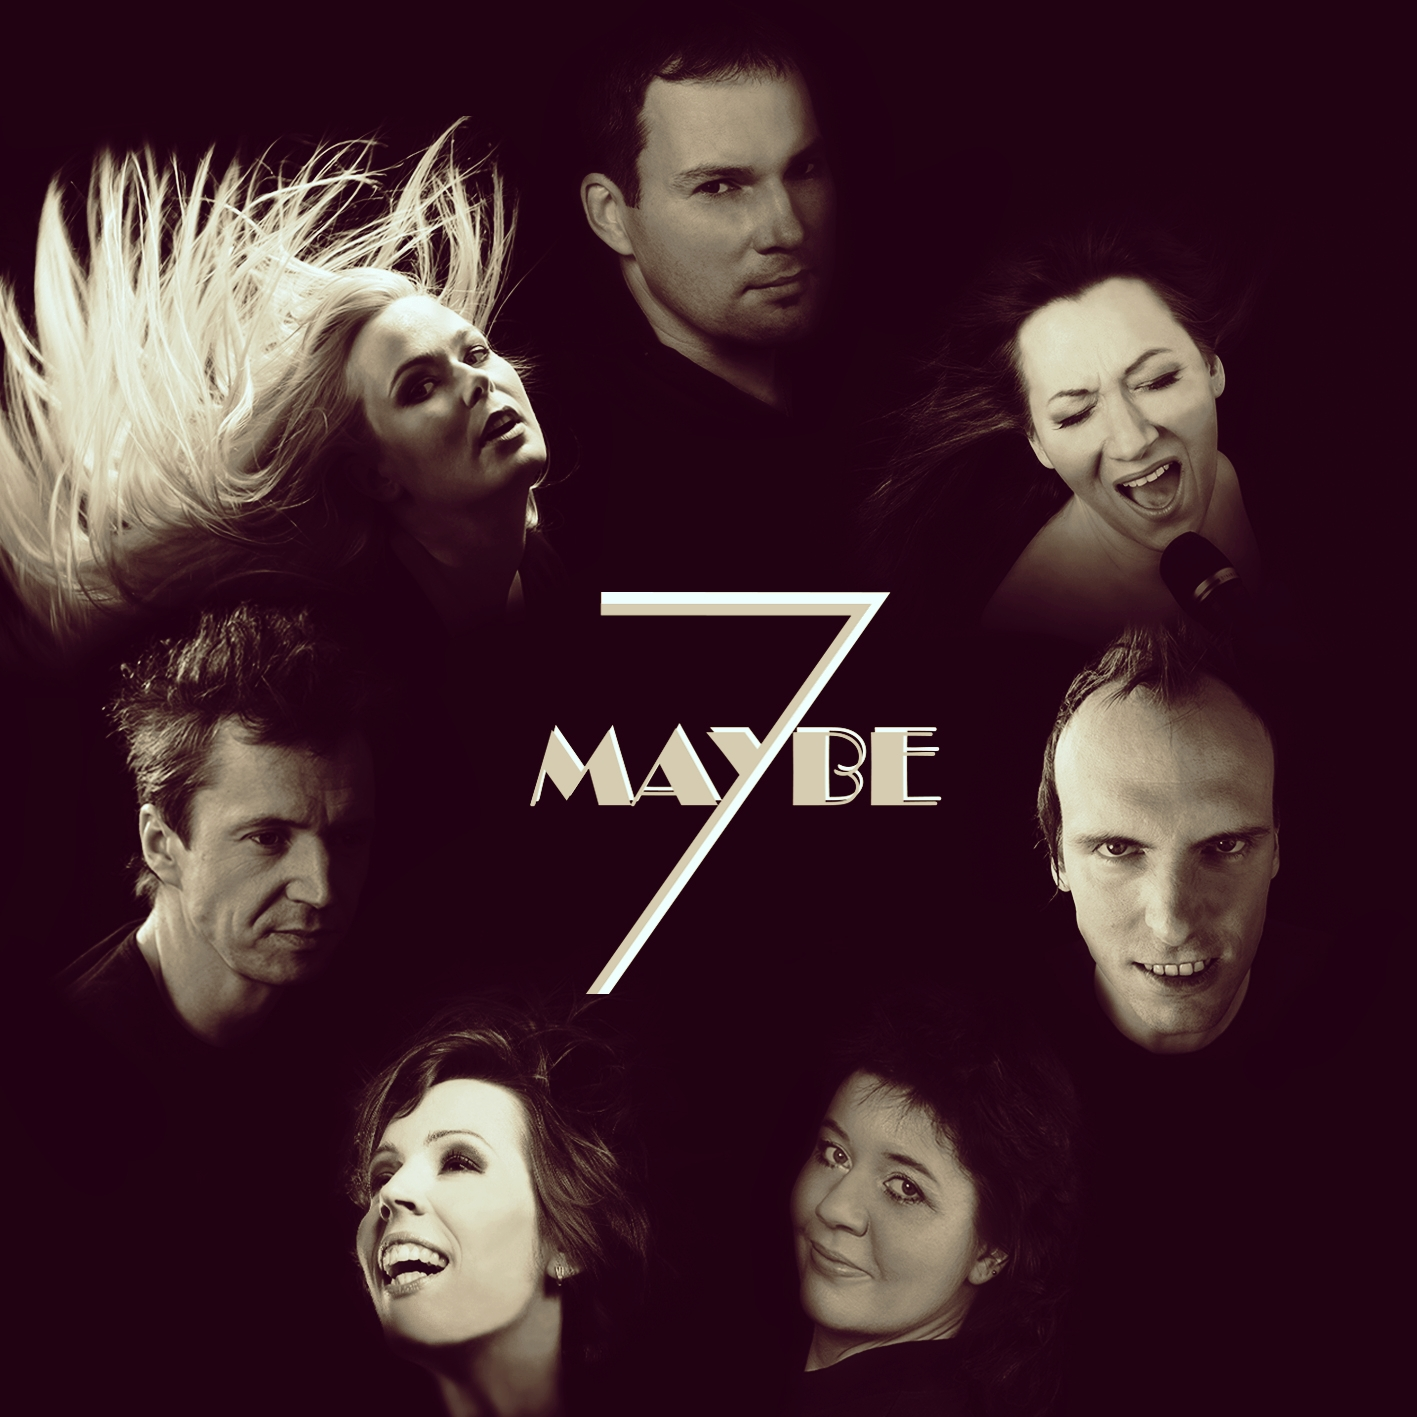 Maybe7 and logo sepia